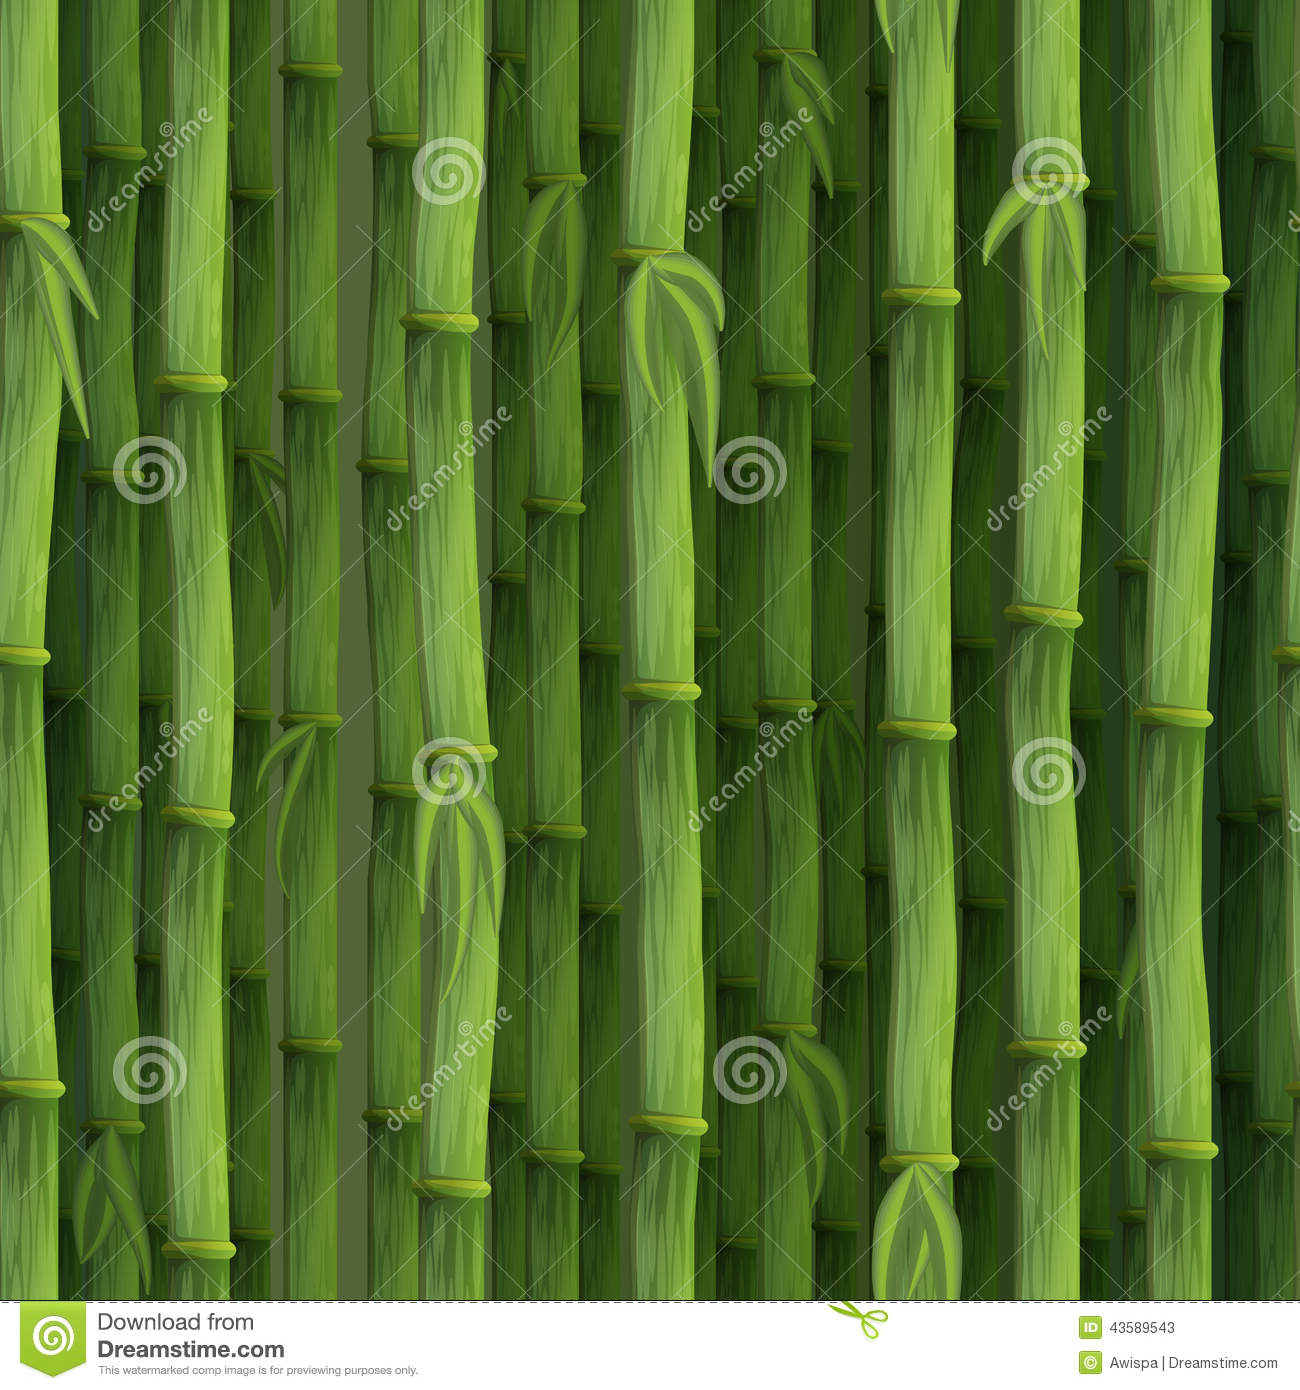 seamless green bamboo background stock vector illustration of